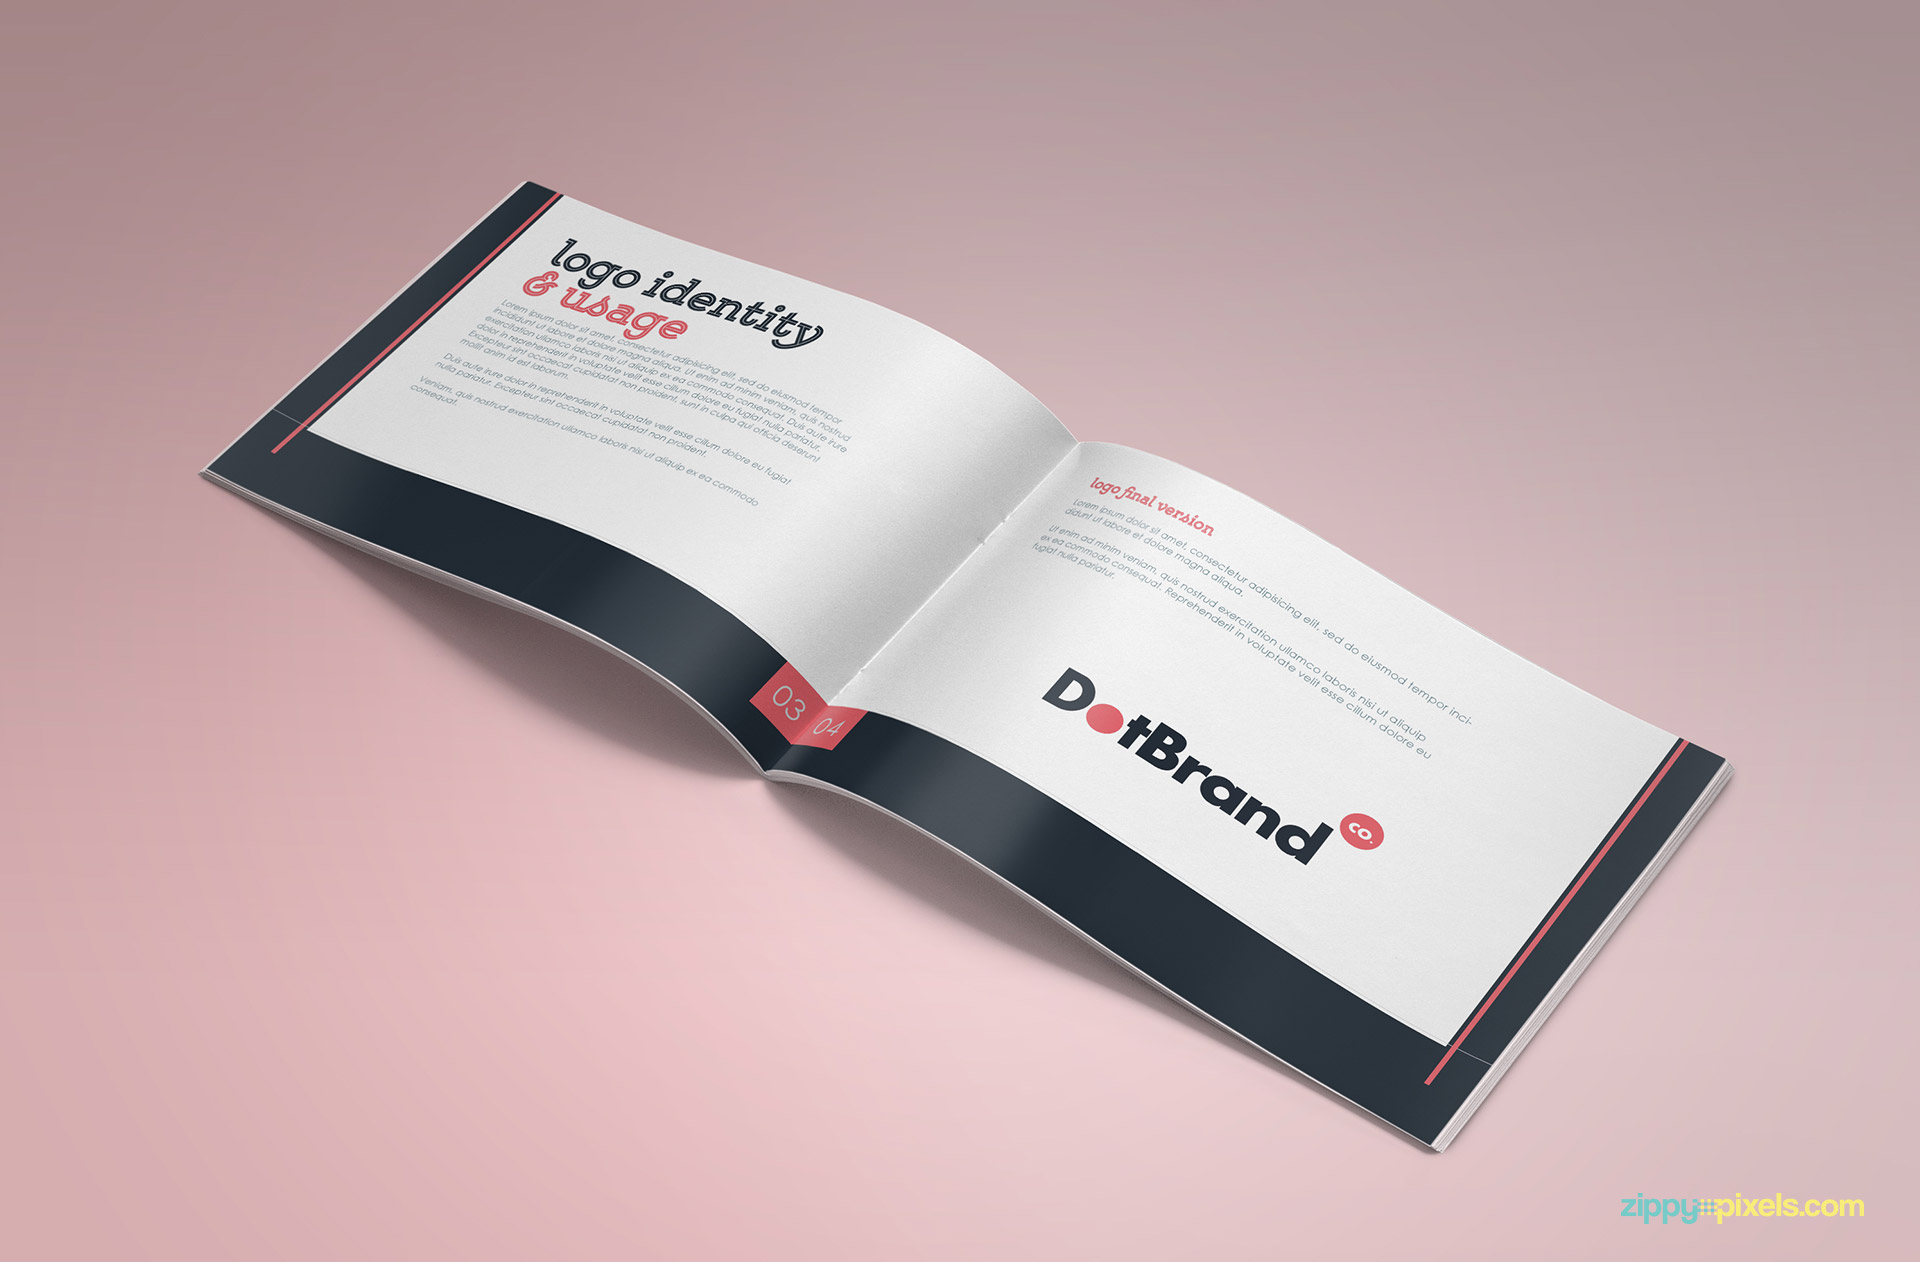 07-brand-book-8-logo-identity-usage